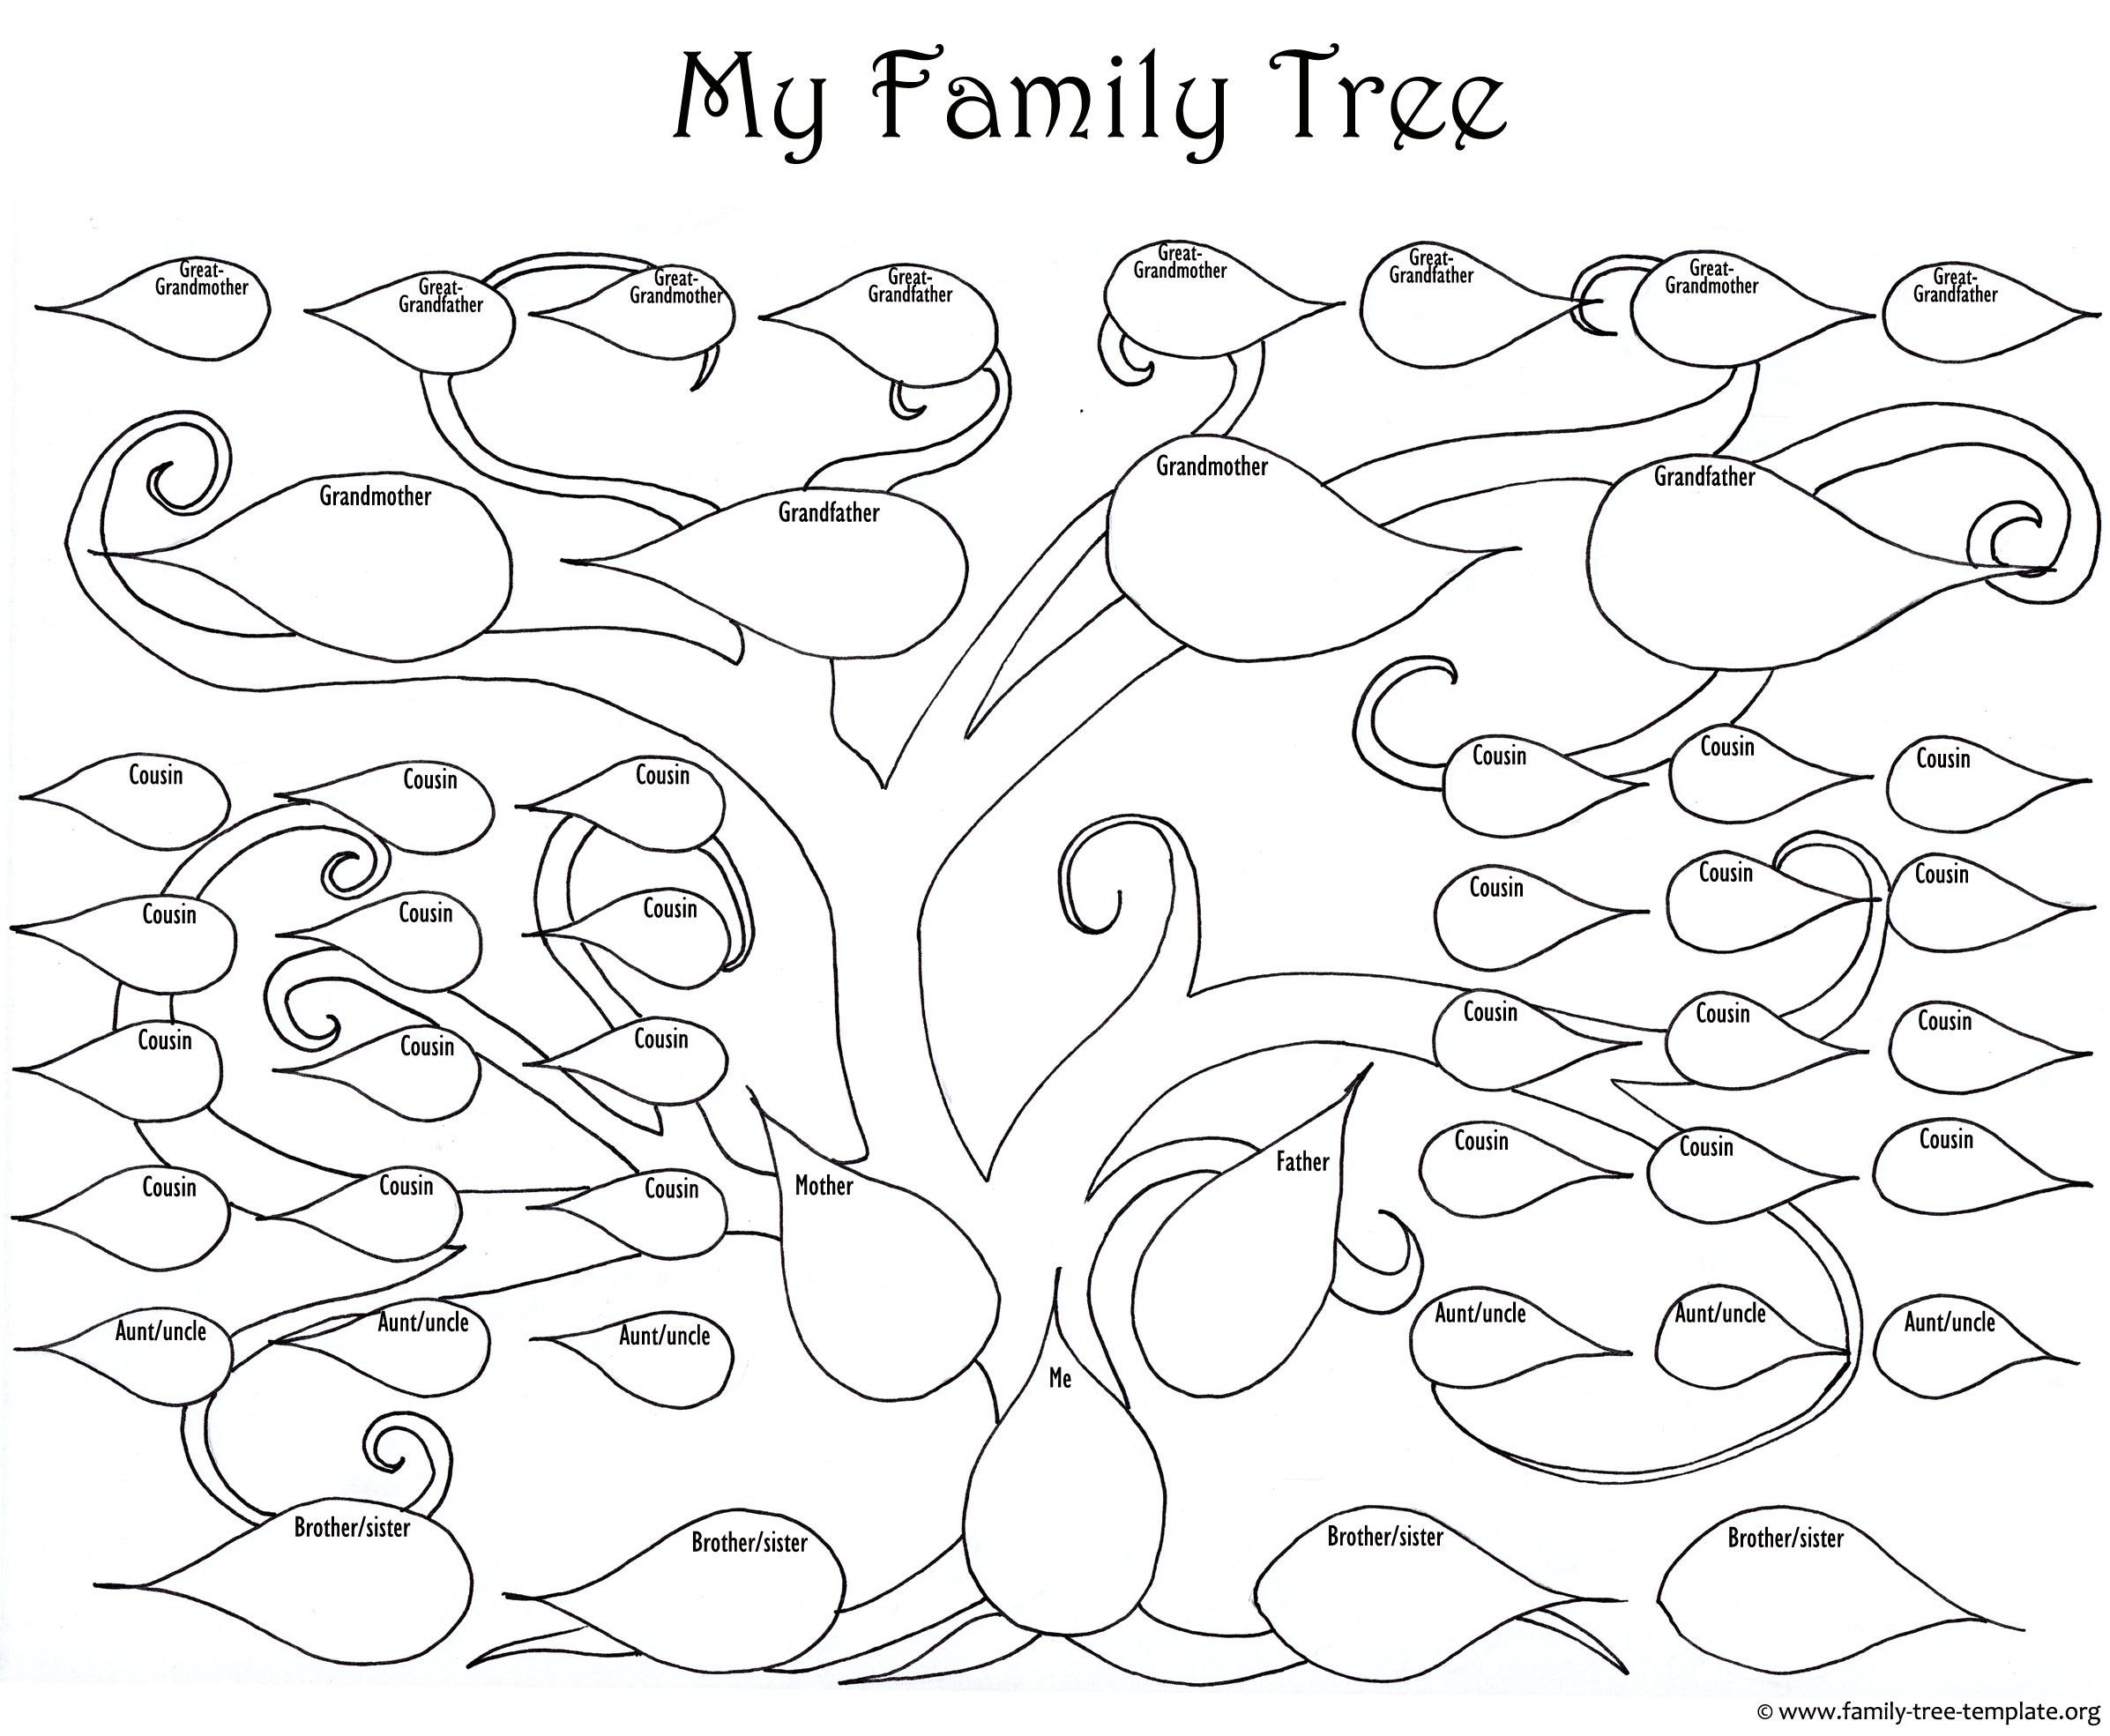 genealogy templates for family trees - a printable blank family tree to make your kids genealogy